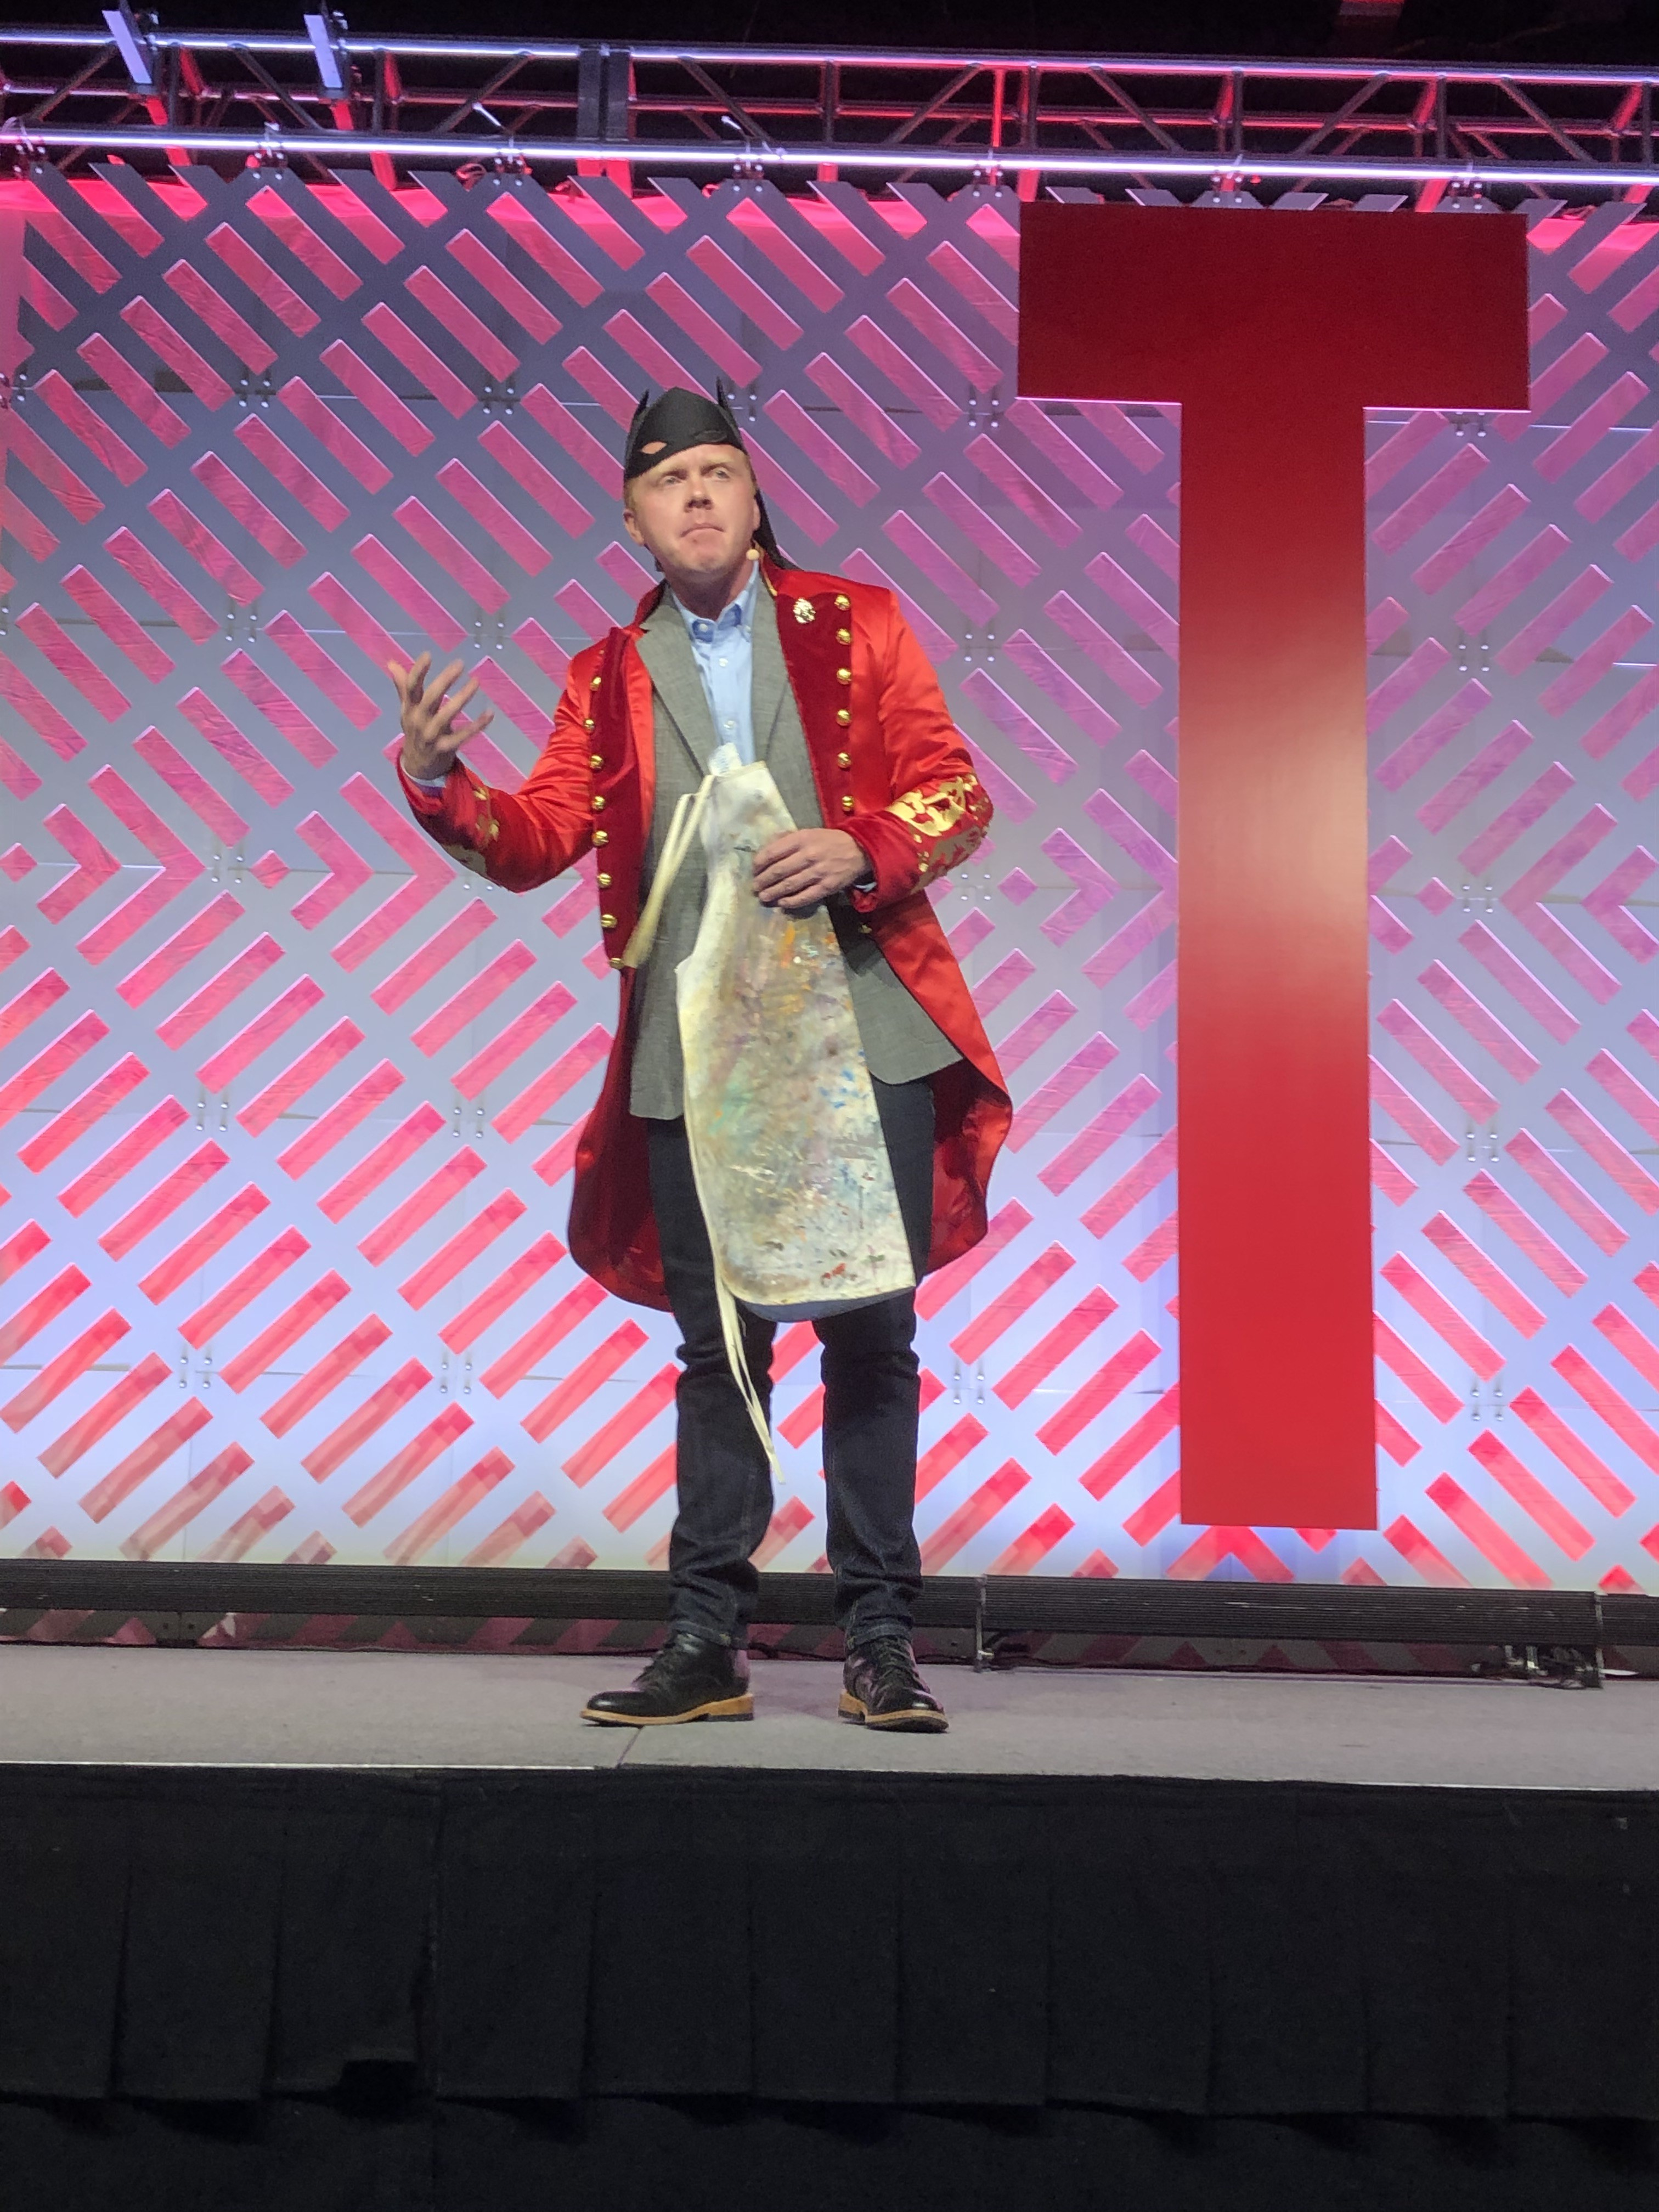 Jeff Goins on Tribe Conference stage wearing costumes from past conferences.